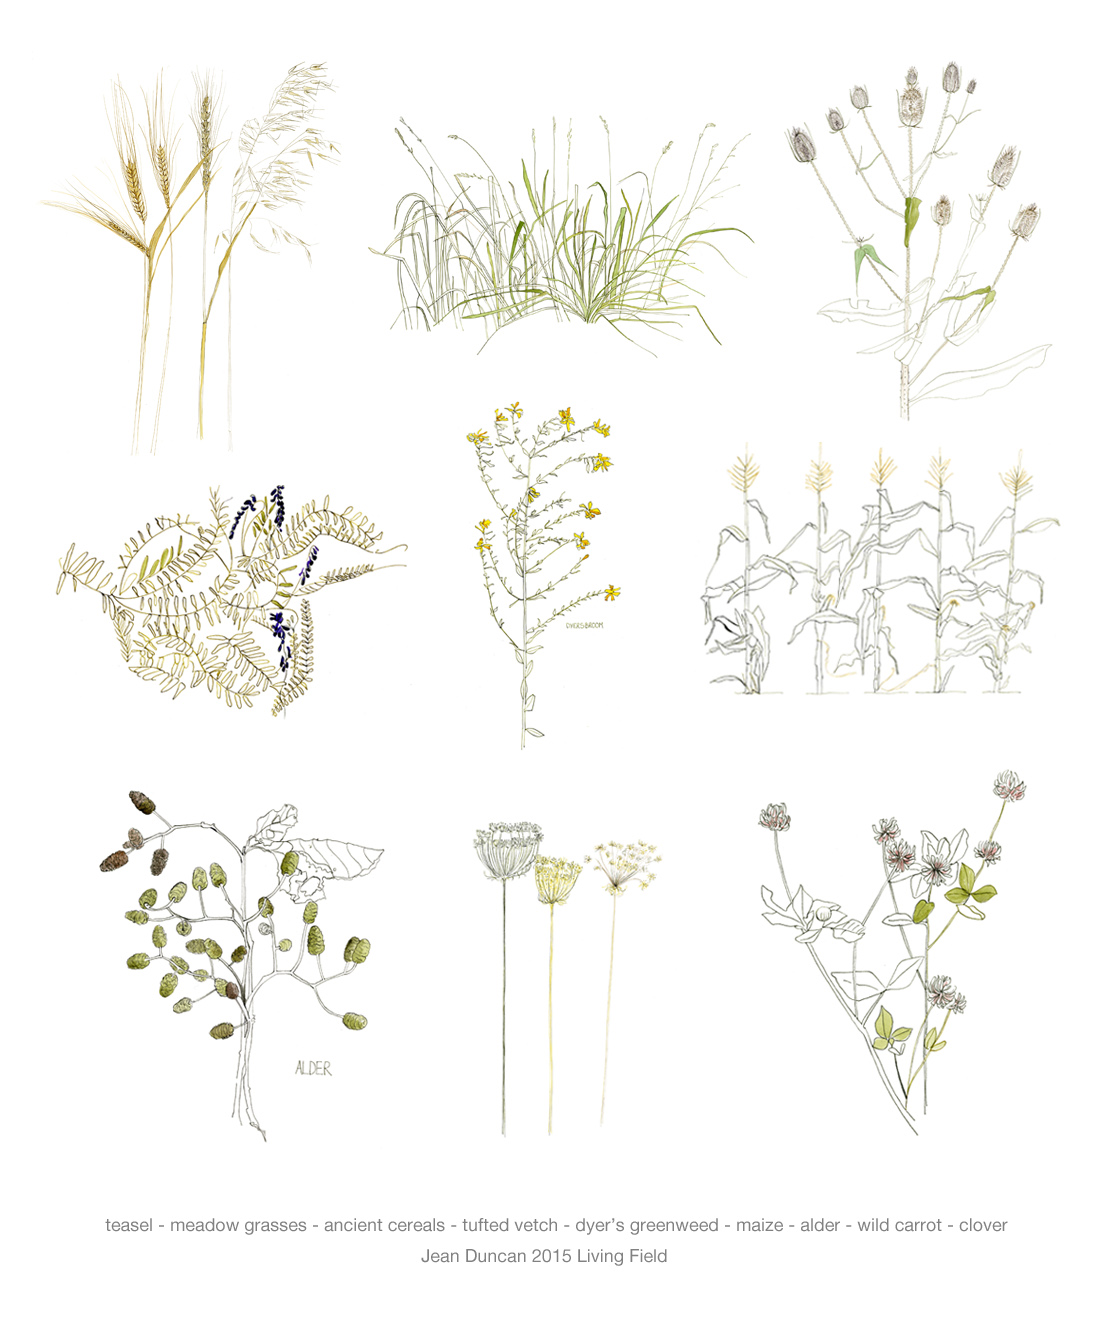 Plants of the Living Field garden by Jean Duncan